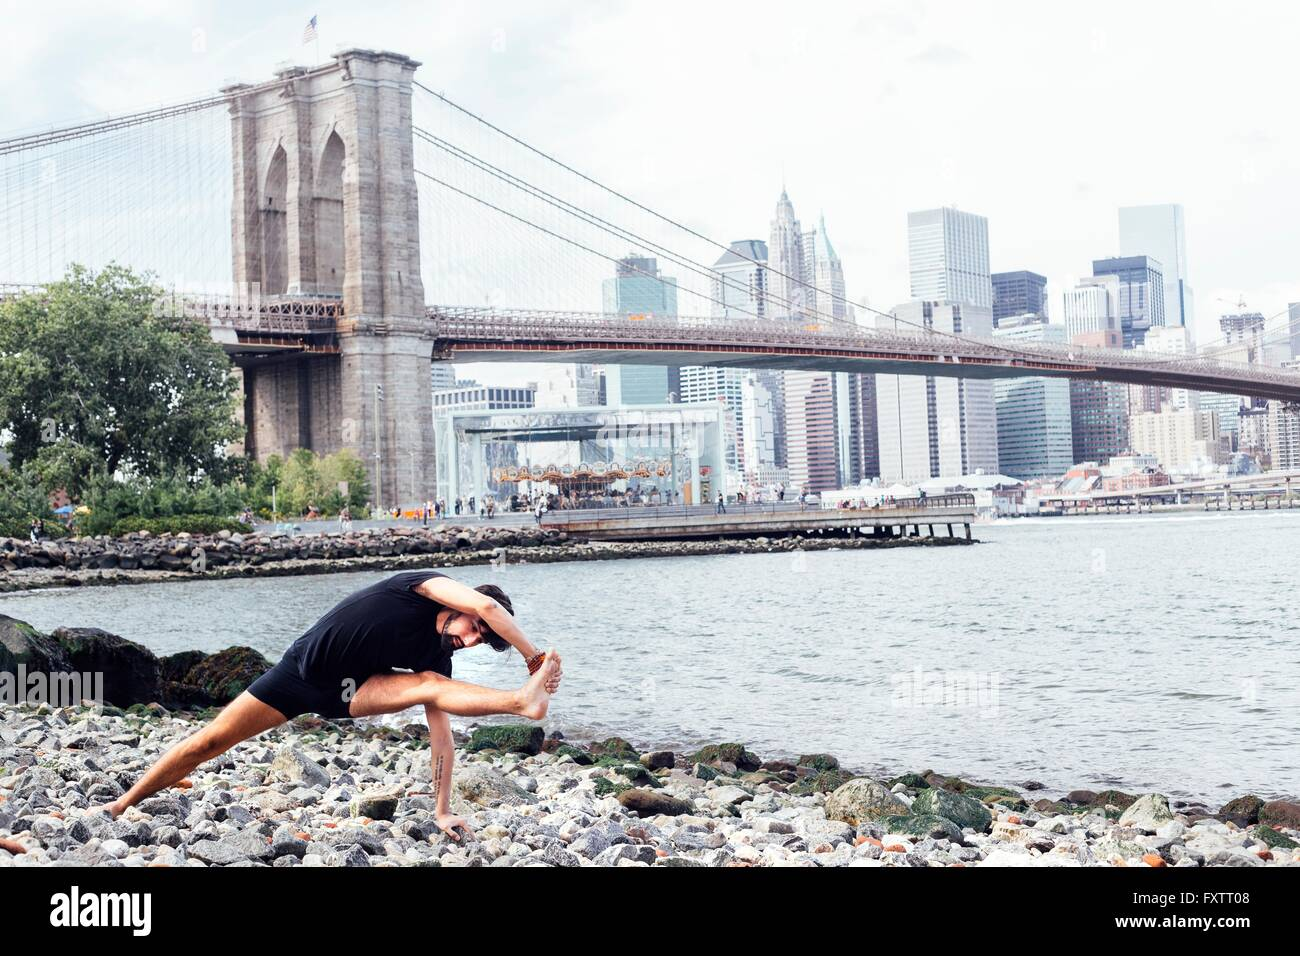 Young man practicing yoga on riverside in front of Brooklyn Bridge, New York, USA - Stock Image